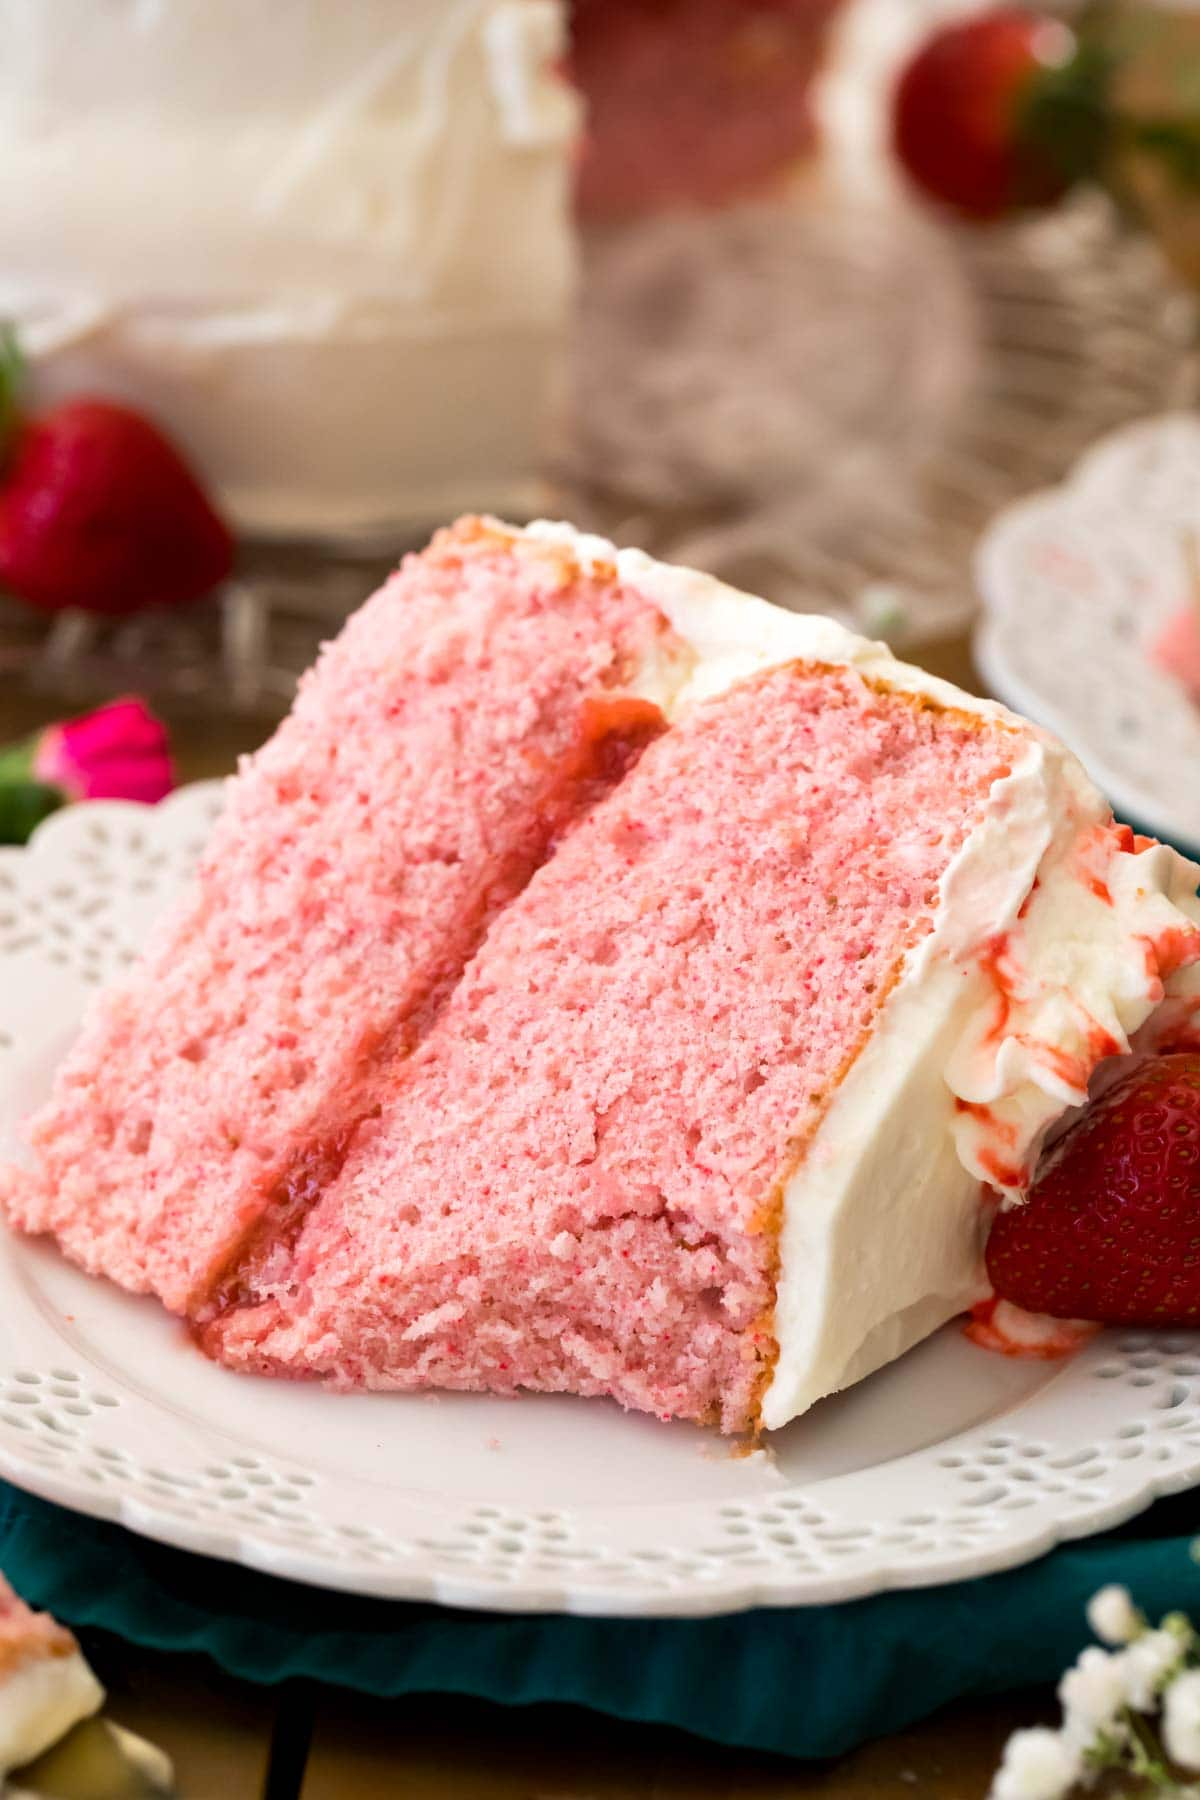 strawberry cake made from scratch on white plate. forkful missing to show soft and fluffy texture